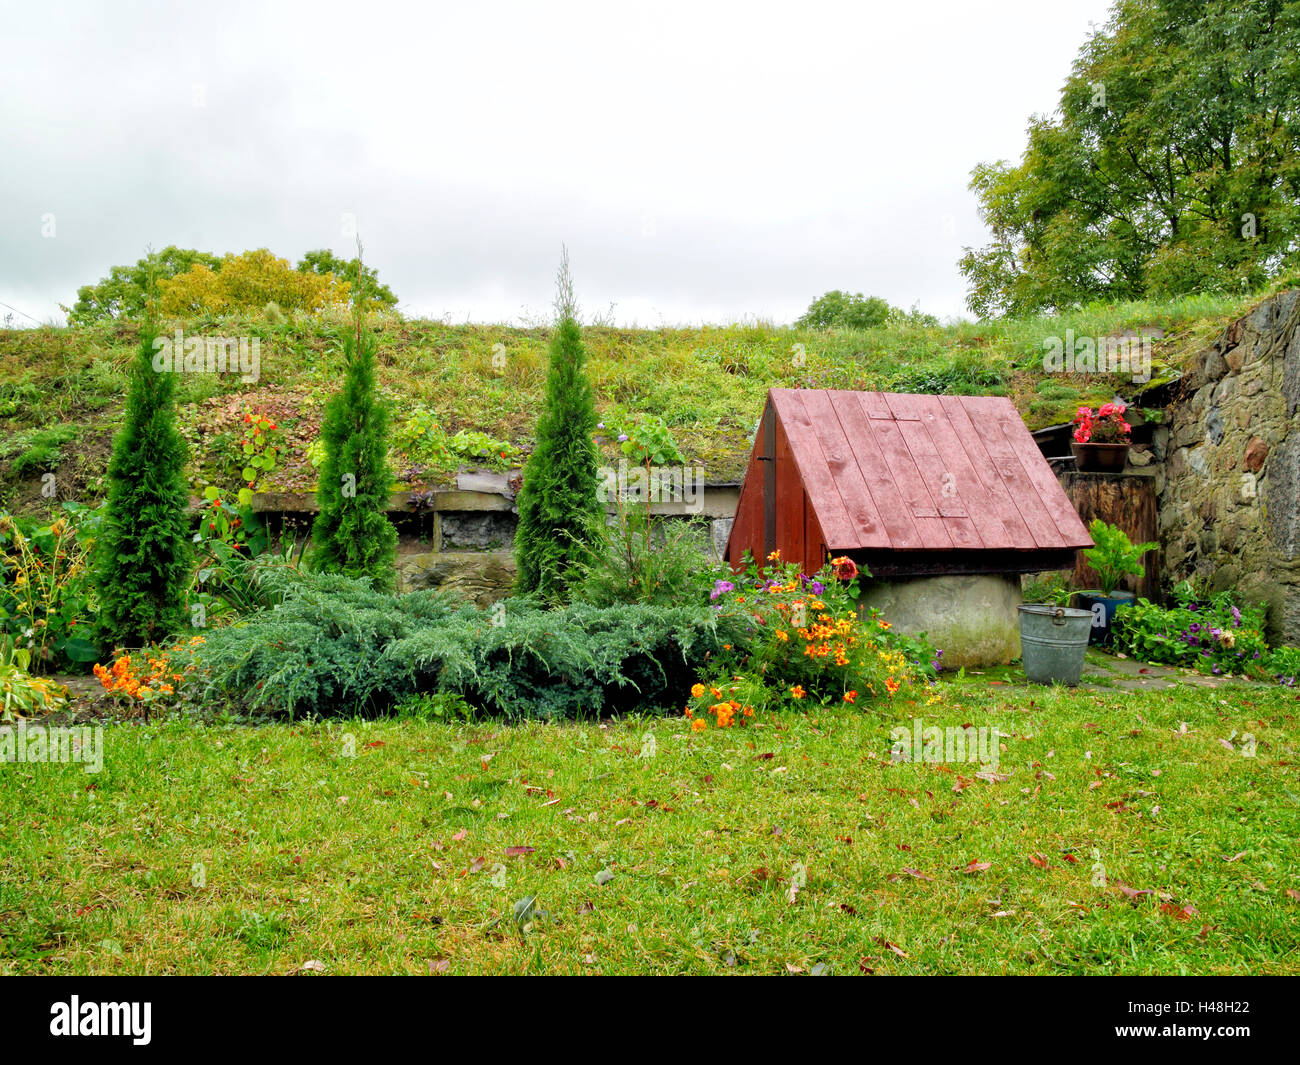 traditional old water well with wooden roof in an autumn country garden - Stock Image